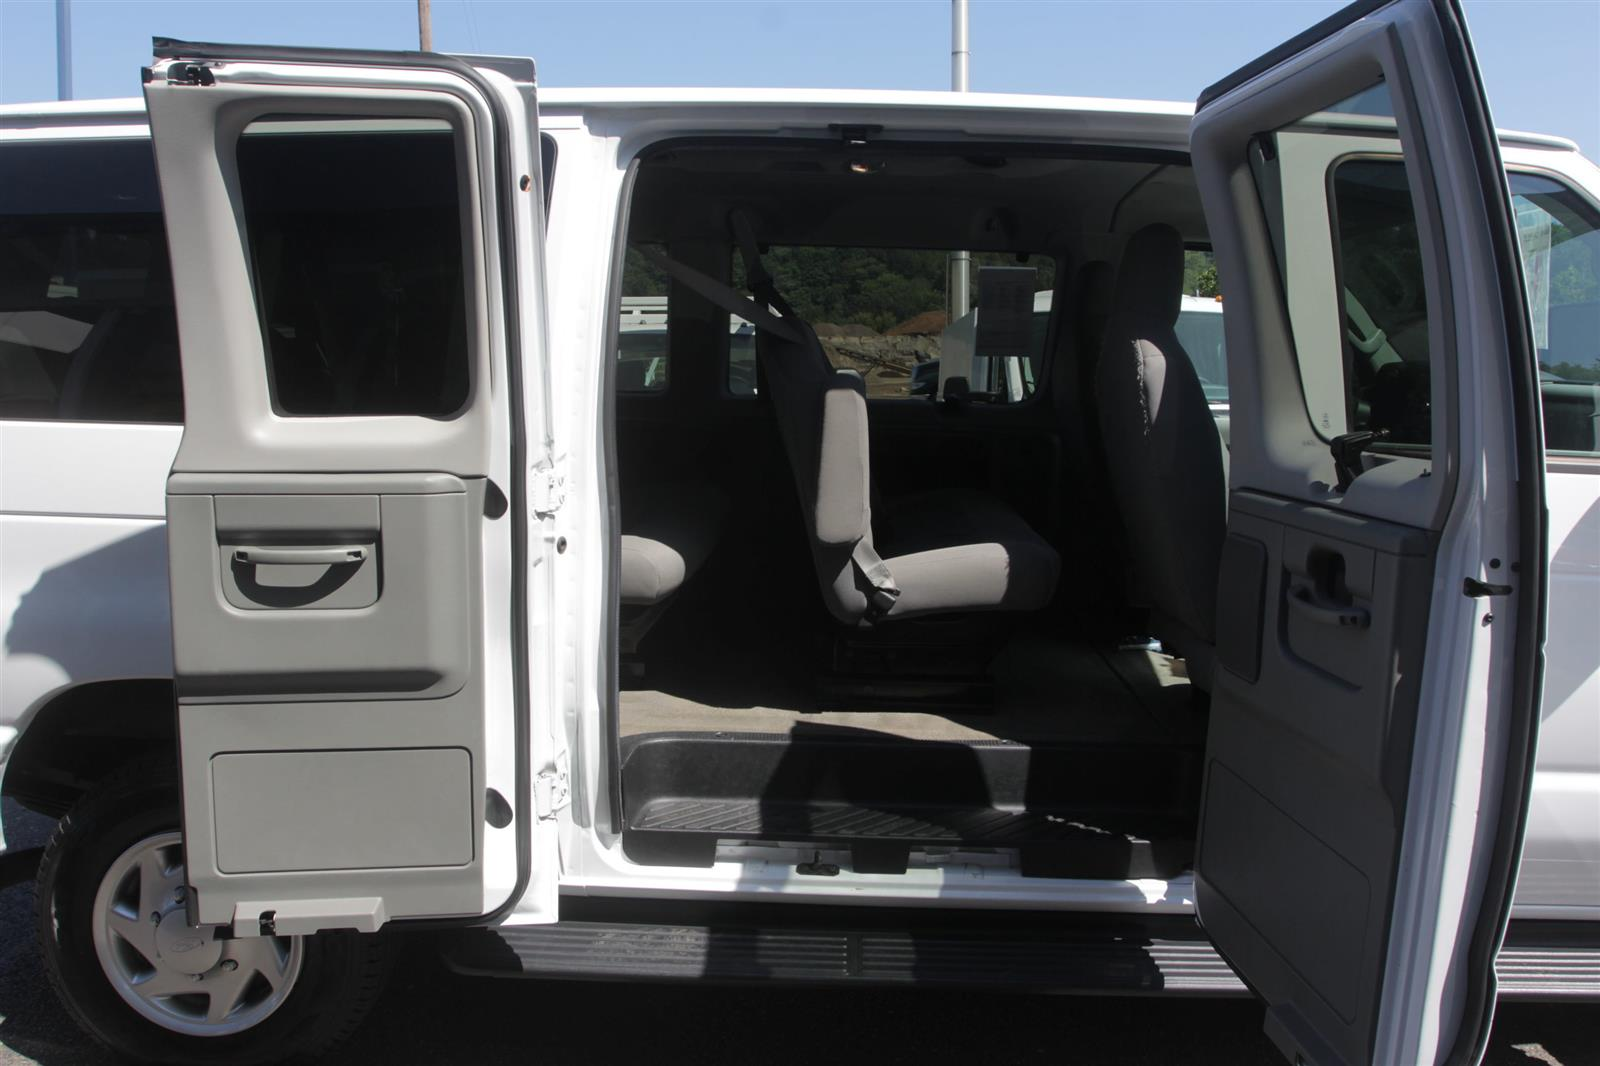 2014 Ford E-350 4x2, Passenger Wagon #52693 - photo 15